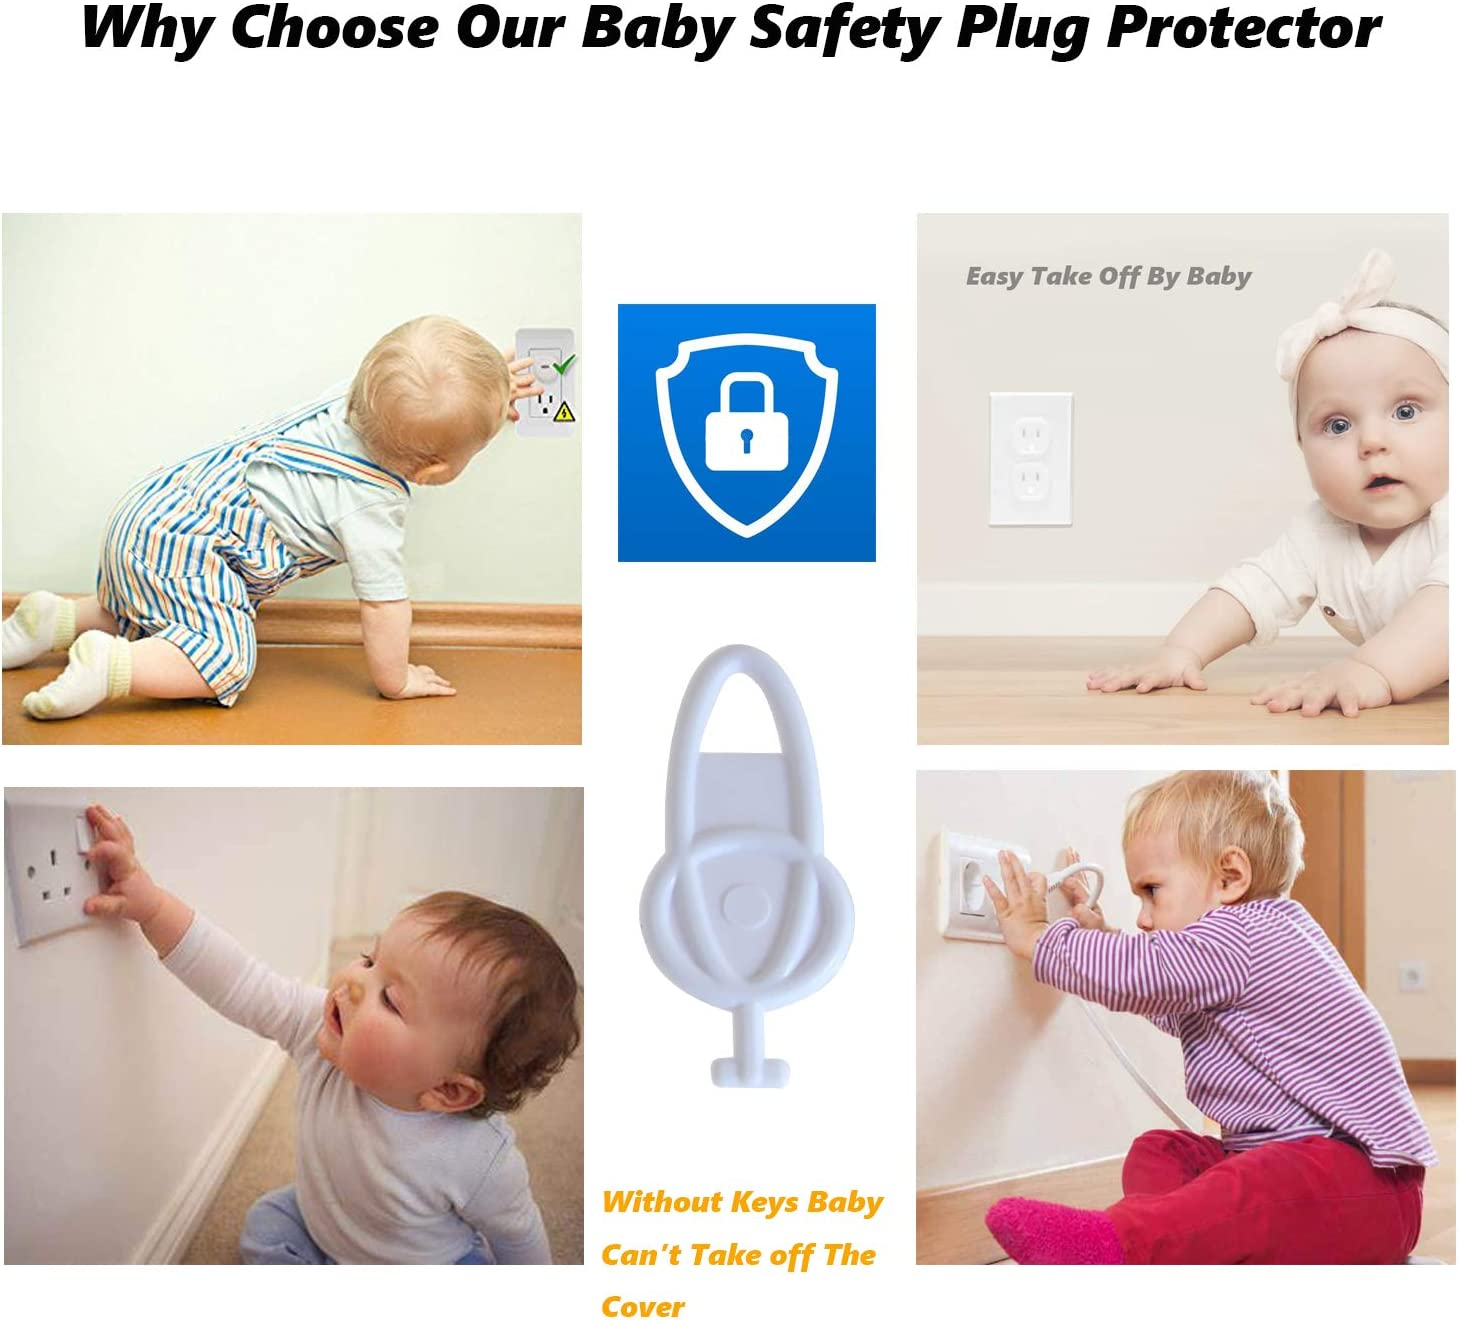 GDTLTP 40 Pack Outlet Plug Covers Baby Proof, Protect Children's Safety, Prevent Electric Shock, Baby Proofing Electric Protector Plug Covers Kit (18 Three Prongs & 18 Two prongs & 4 Keys)